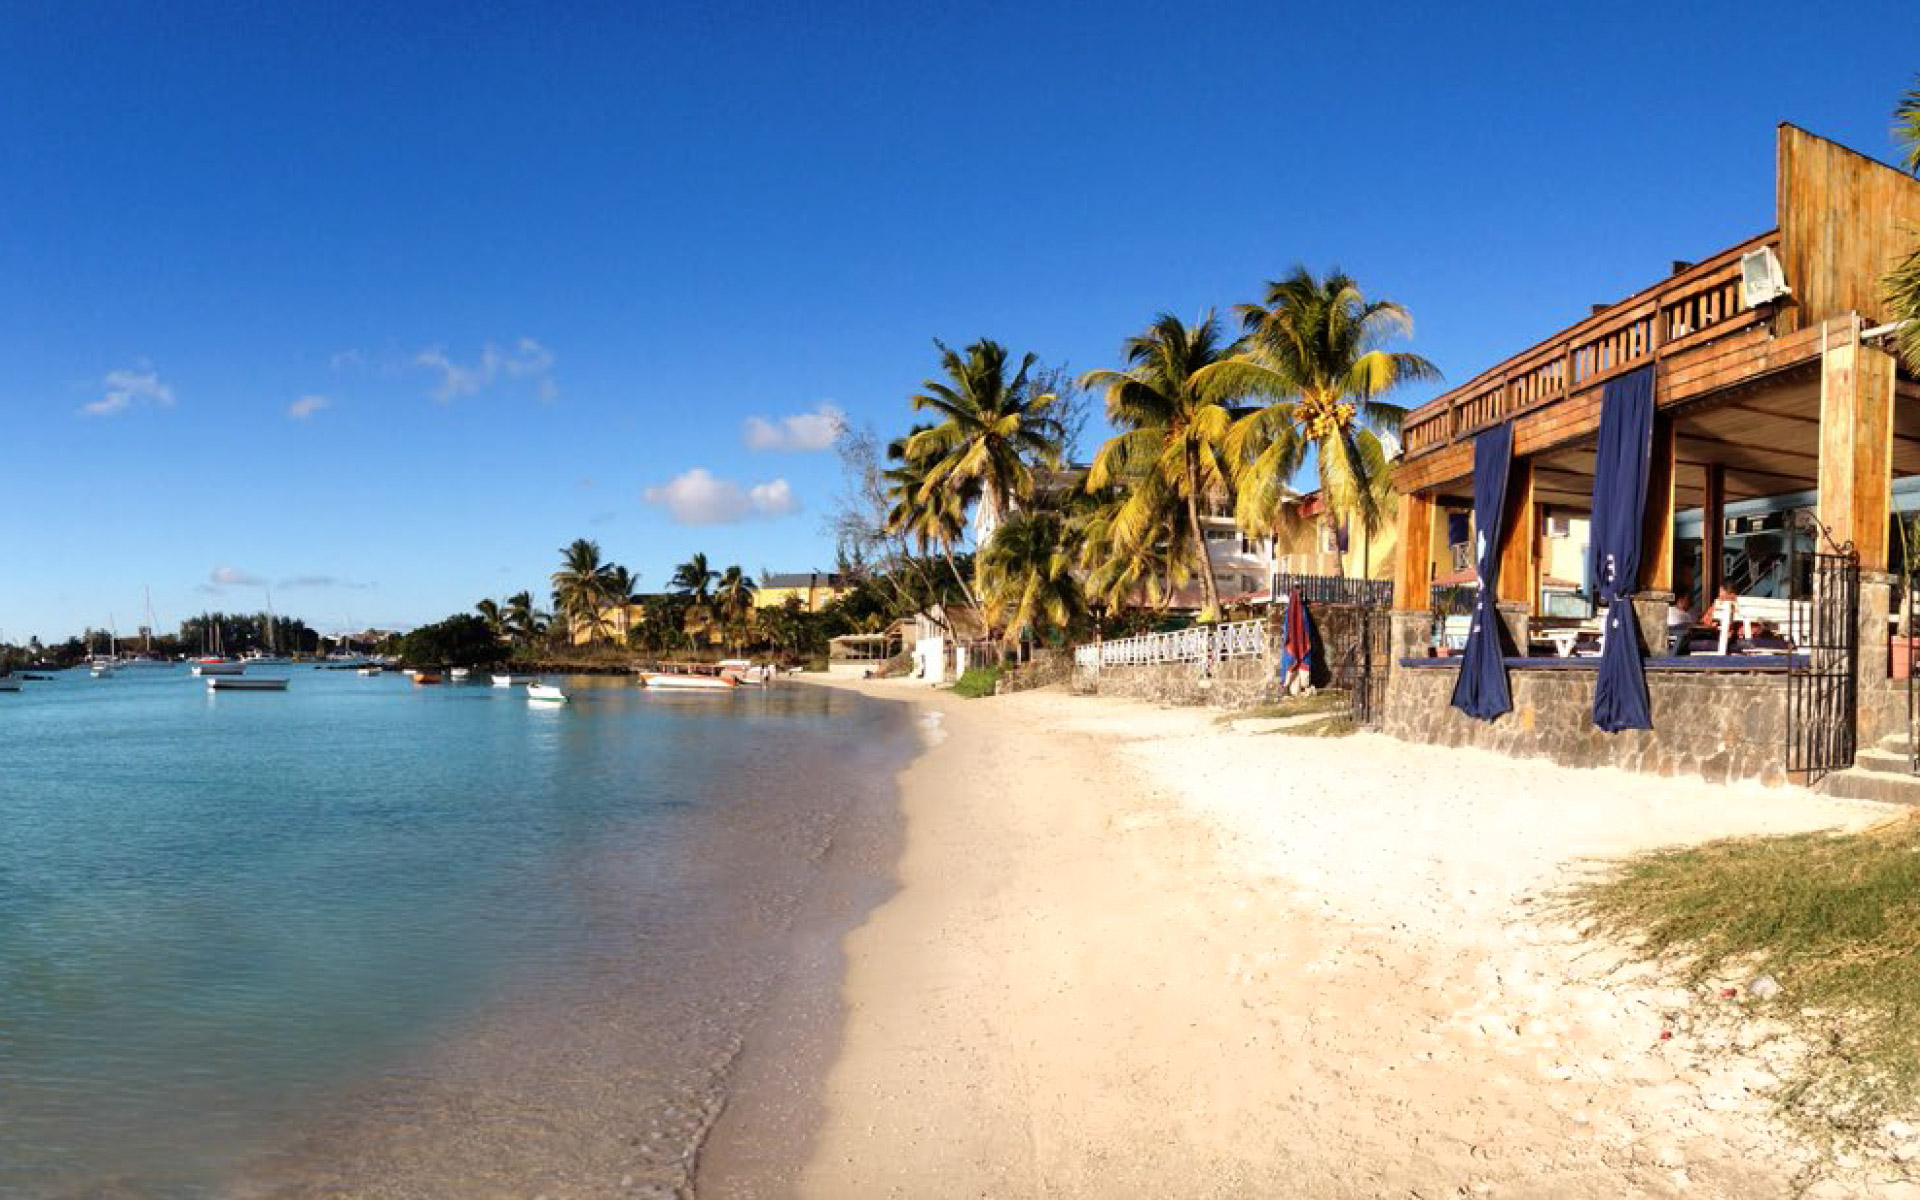 The beach house restaurant bar your favorite beach style restaurant in grand baie - House on beach pix ...